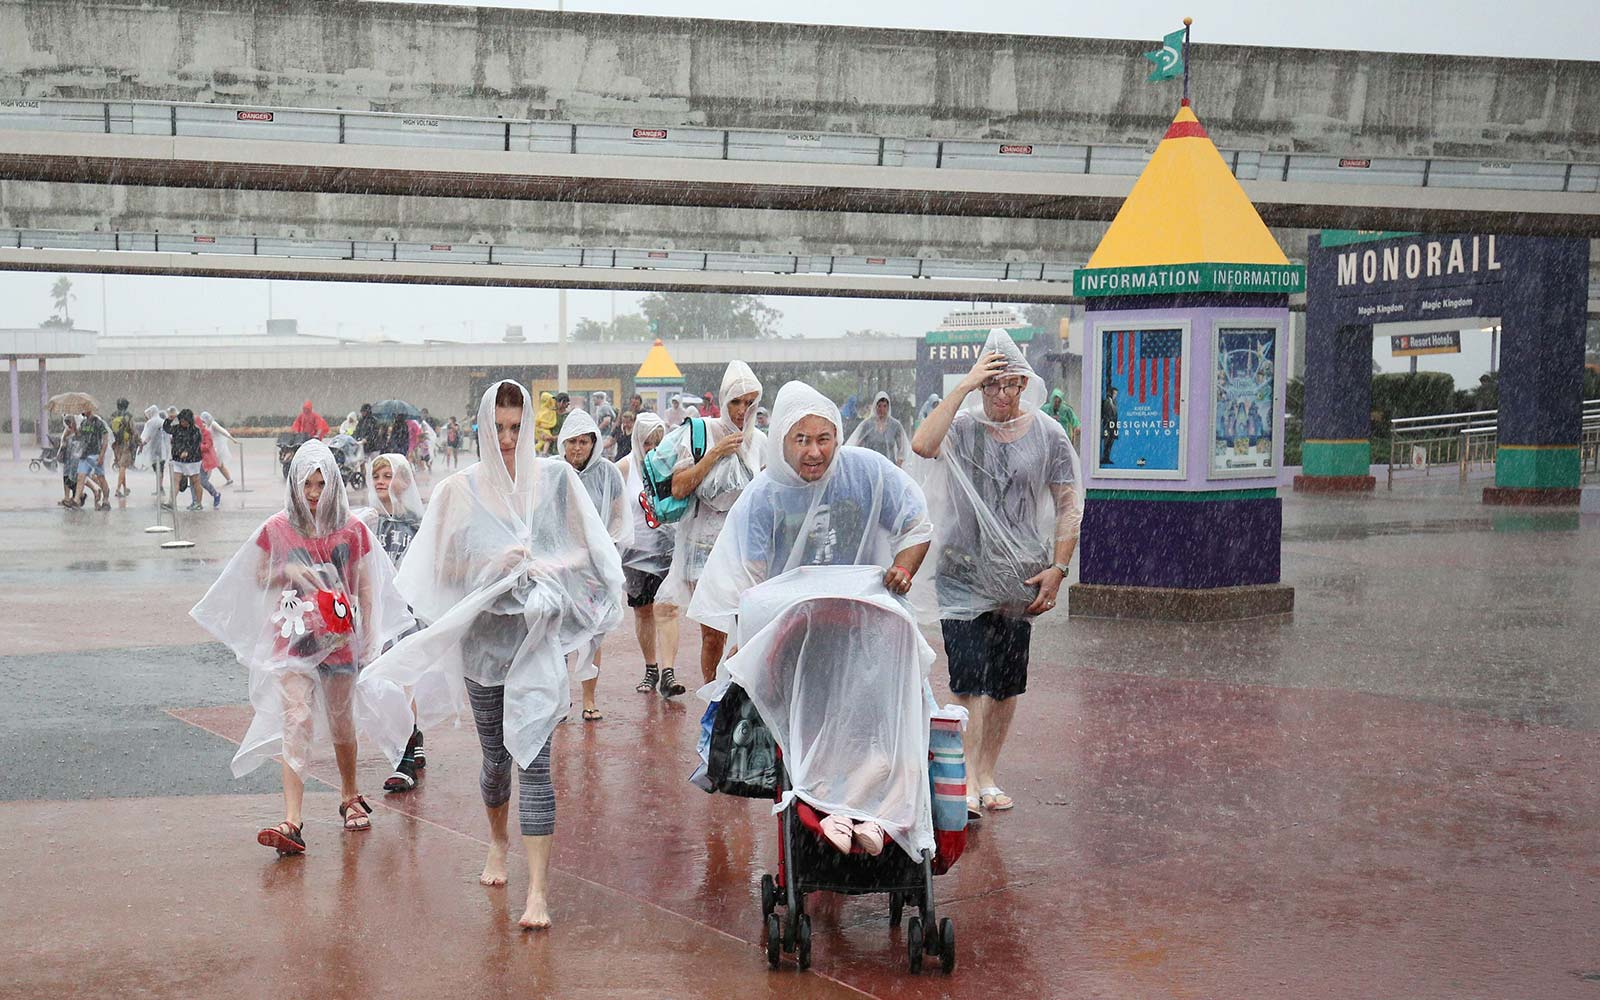 People leave Disney's Magic Kingdom theme park, in heavy rain, after it closed in Orlando, Florida in preparation for the landfall of Hurricane Matthew, on October 6, 2016. Some three million people on the US southeast coast faced an urgent evacuation or